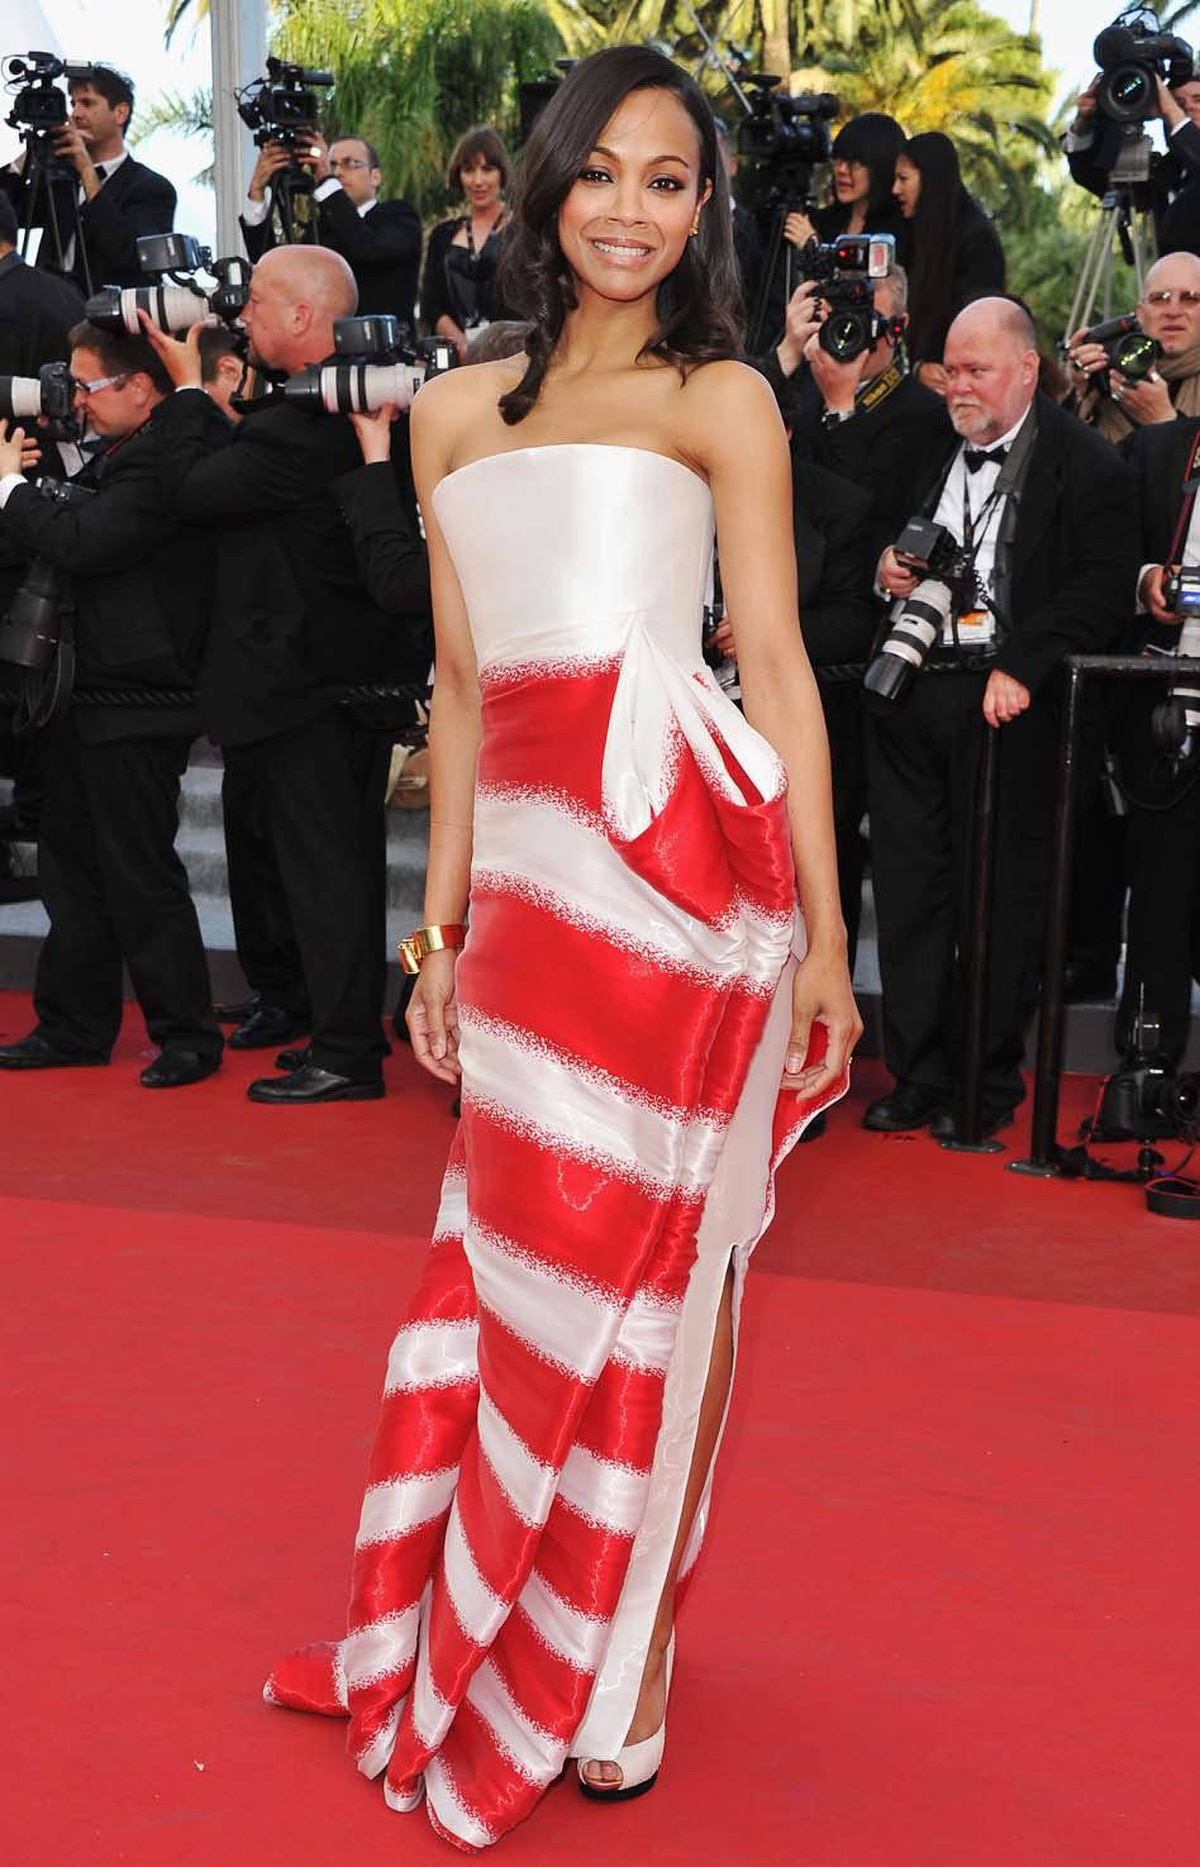 """Actress Zoe Saldana attends """"The Tree Of Life"""" premiere at the Cannes Film Festival on Monday."""